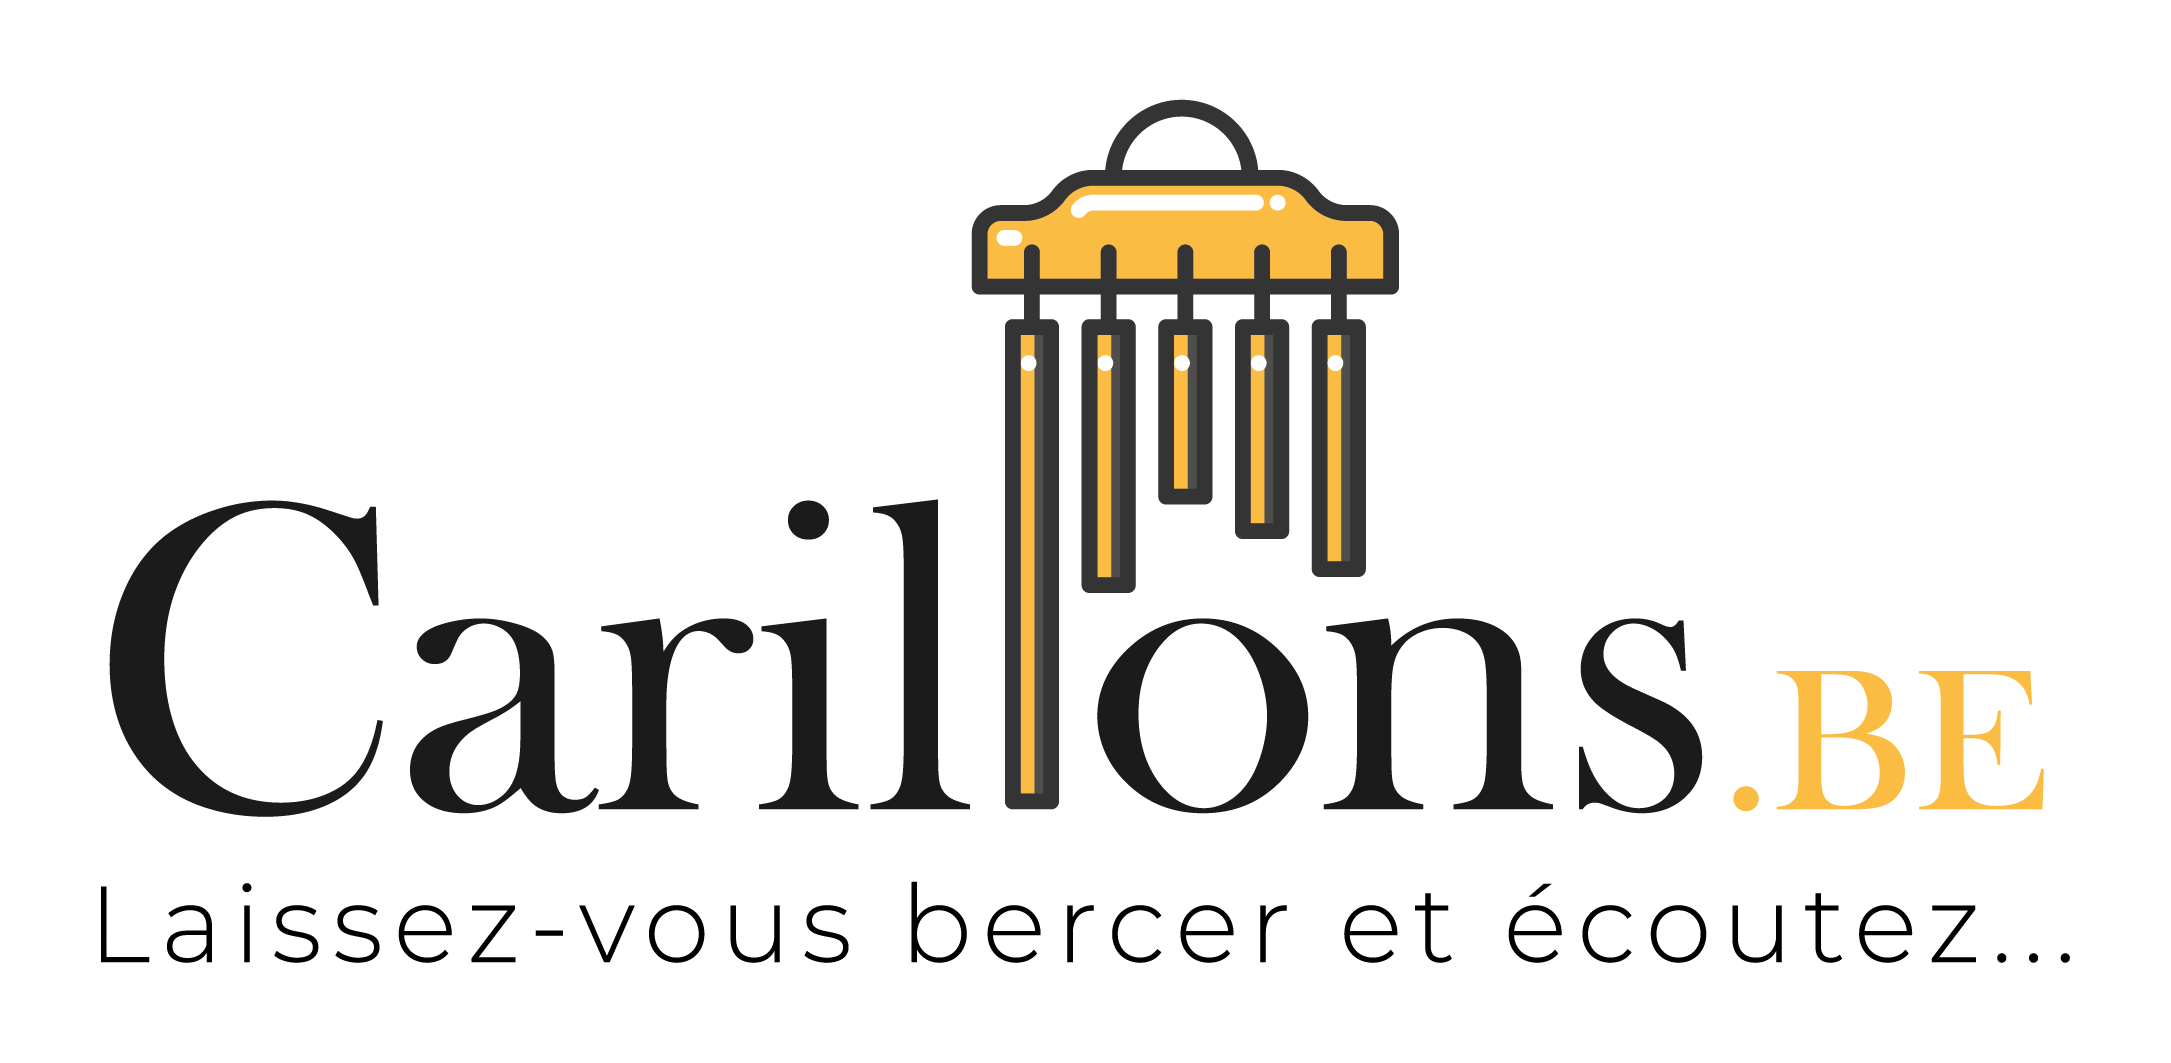 CARILLONS.BE